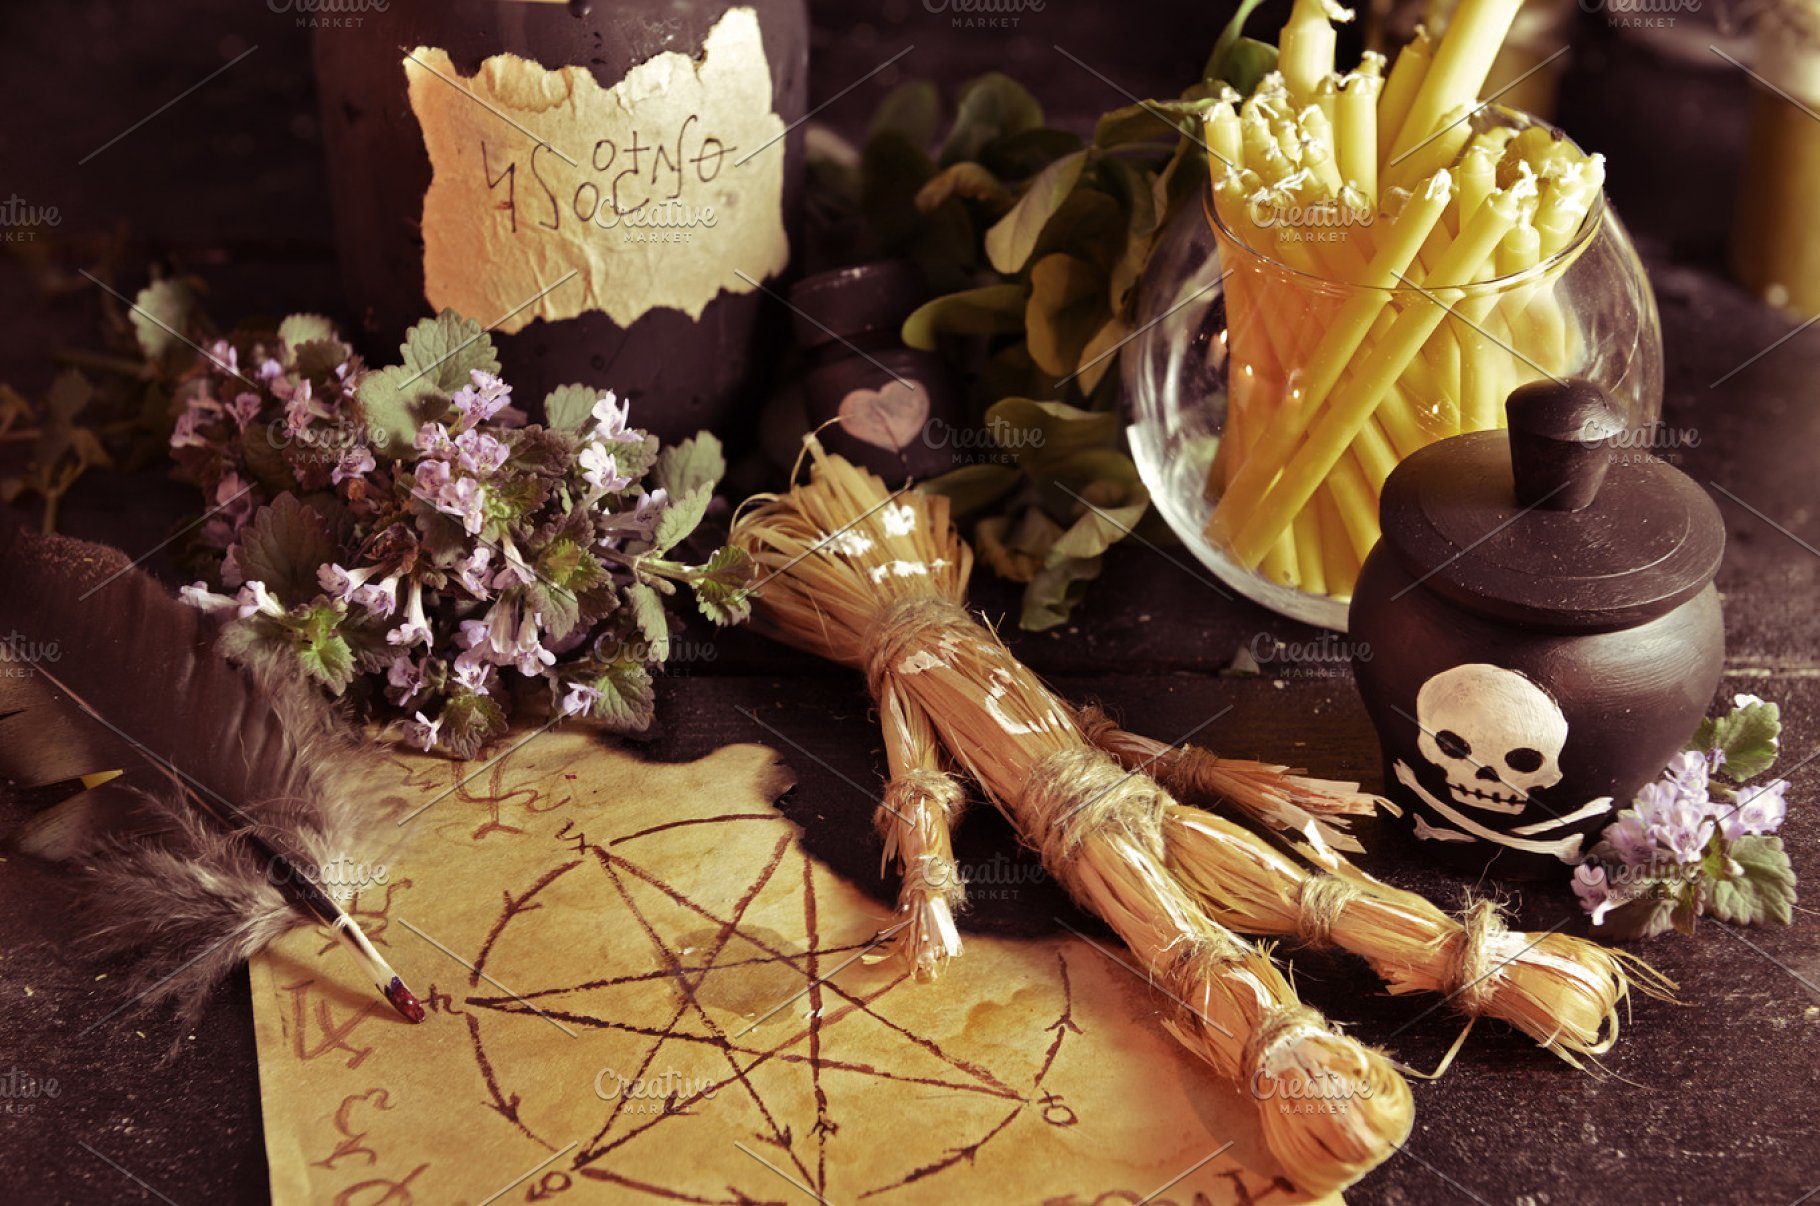 Voodoo doll and magic objects